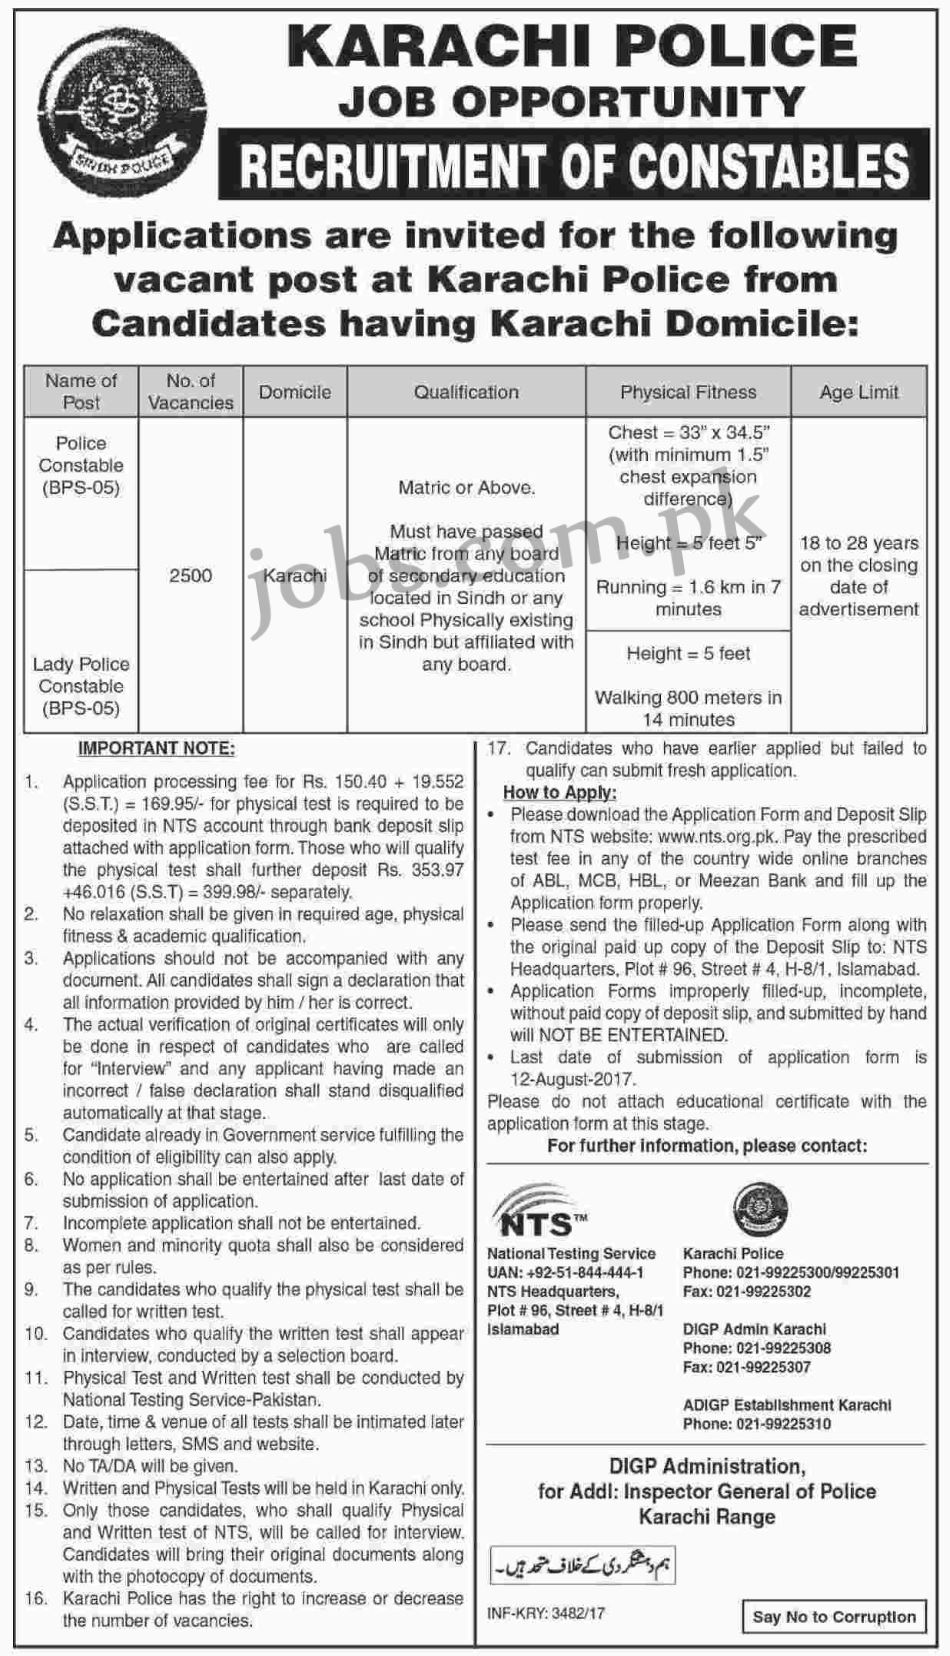 Karachi Police Jobs 2017 For 2500 Police Constables And Lady Police